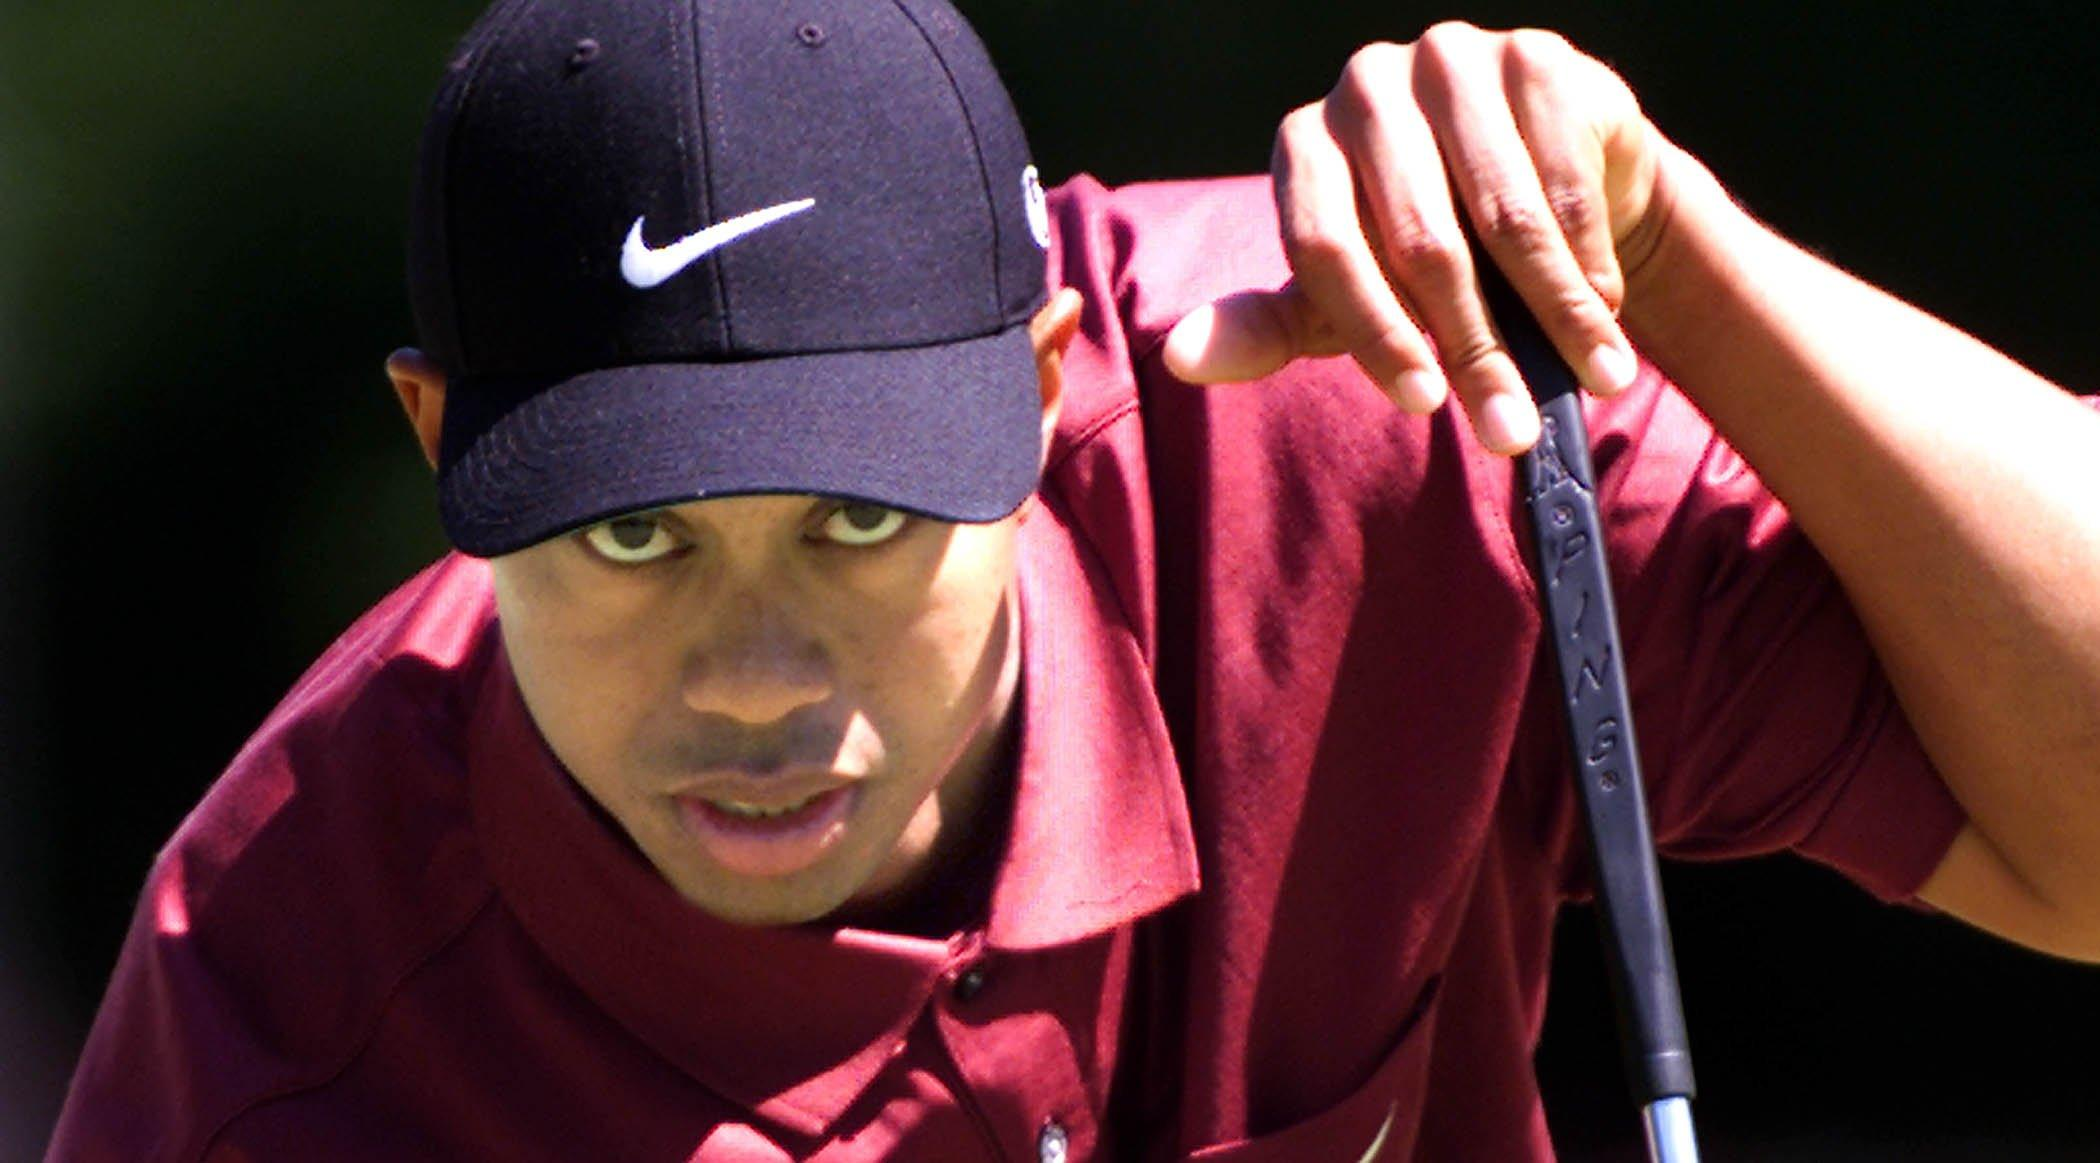 Tiger Woods with his signature look back in 2001